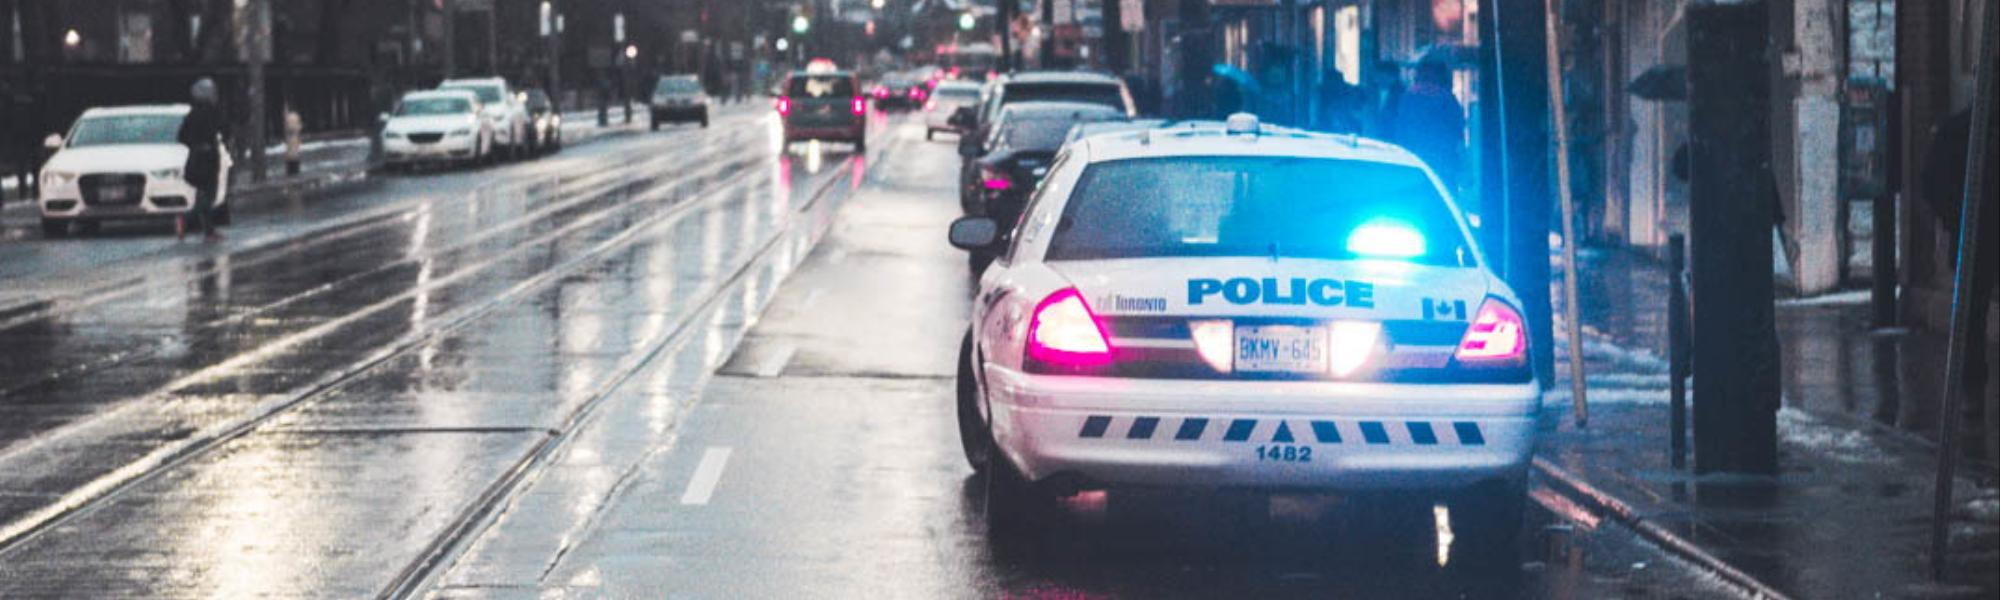 This Website Turns Live Police and Emergency Responder Radio into Timely Ambient Music